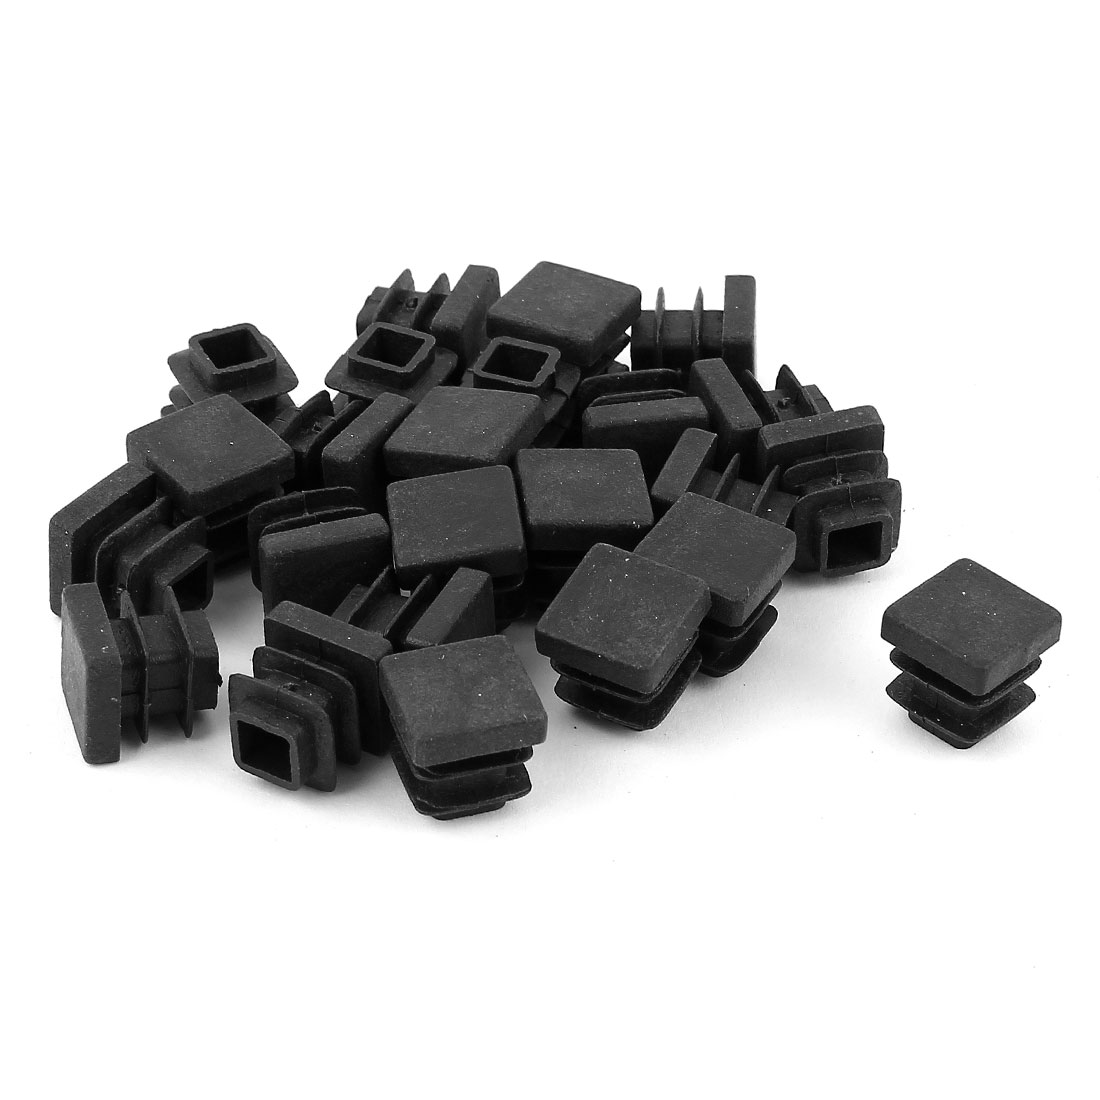 24 Pcs Black Plastic Square Blanking End Caps Tubing Tube Inserts 13mm x 13mm